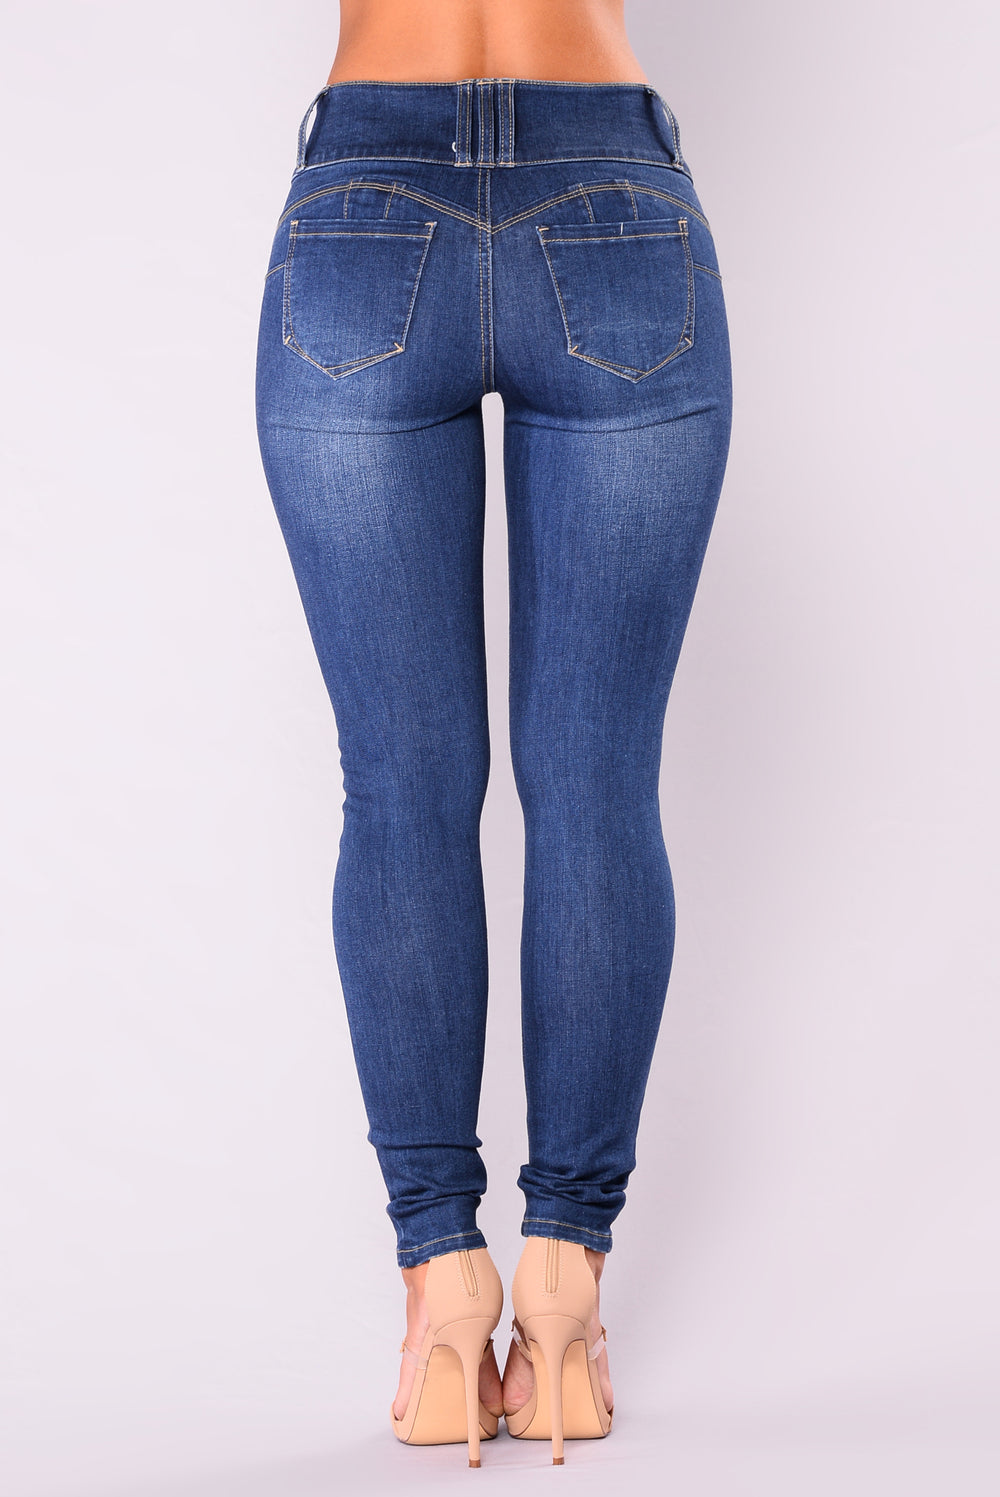 On The Real Booty Shaping Jeans - Medium Denim